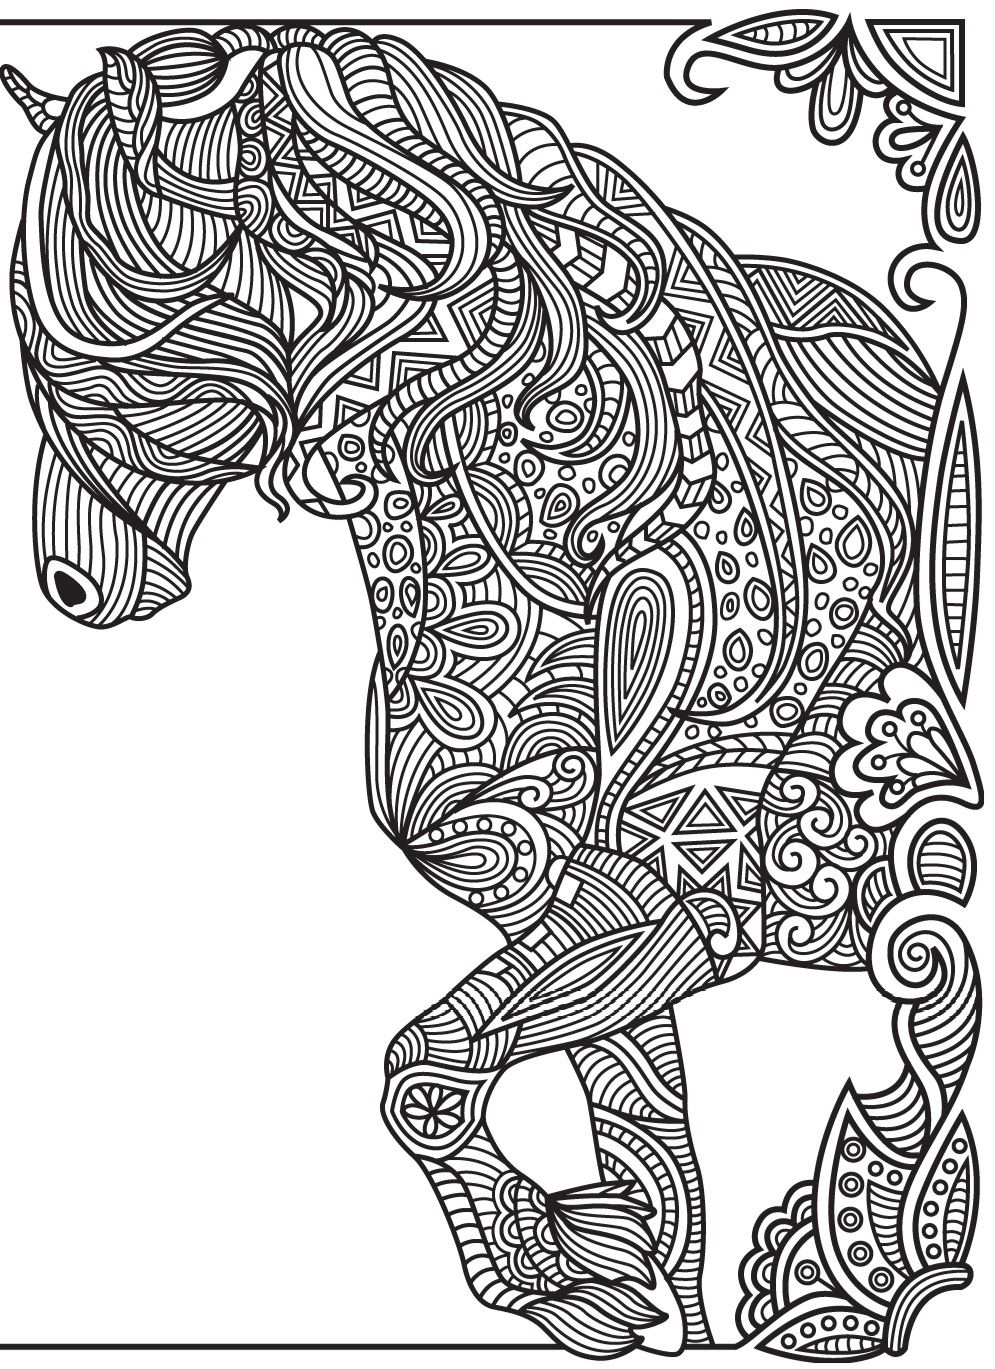 Horses Colorish Coloring Book App For Adults Mandala Relax By